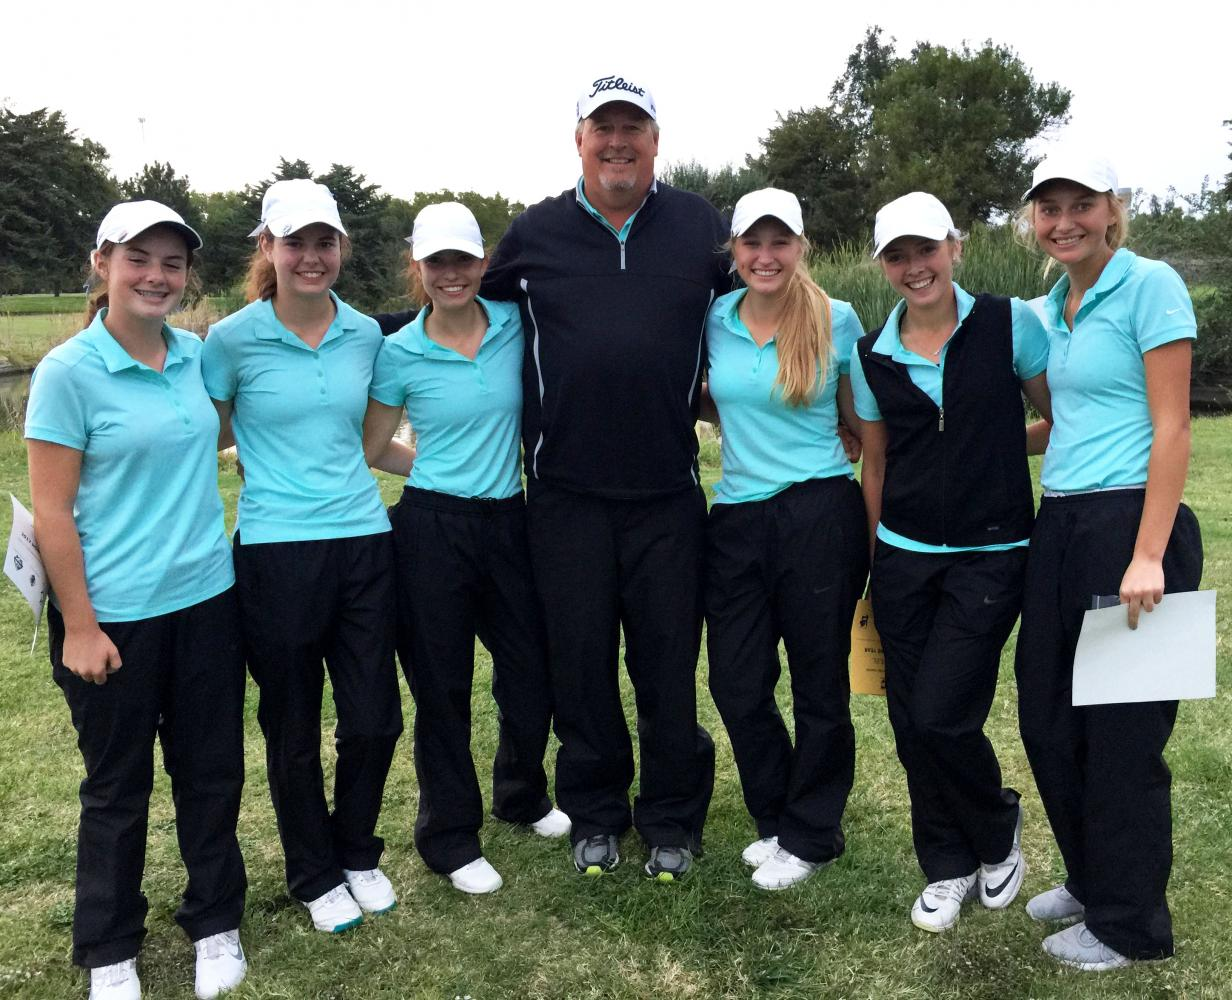 The Lady Indian golf team won the WAC title in the Great Bend Invitational on Oct. 3. Pictured left to right: freshman Sophia Garrison, junior Emily McGuire, junior Molly Eikenberry, Coach Mark Watts, junior Brittani Park, senior Karee Dinkel, junior Emily George